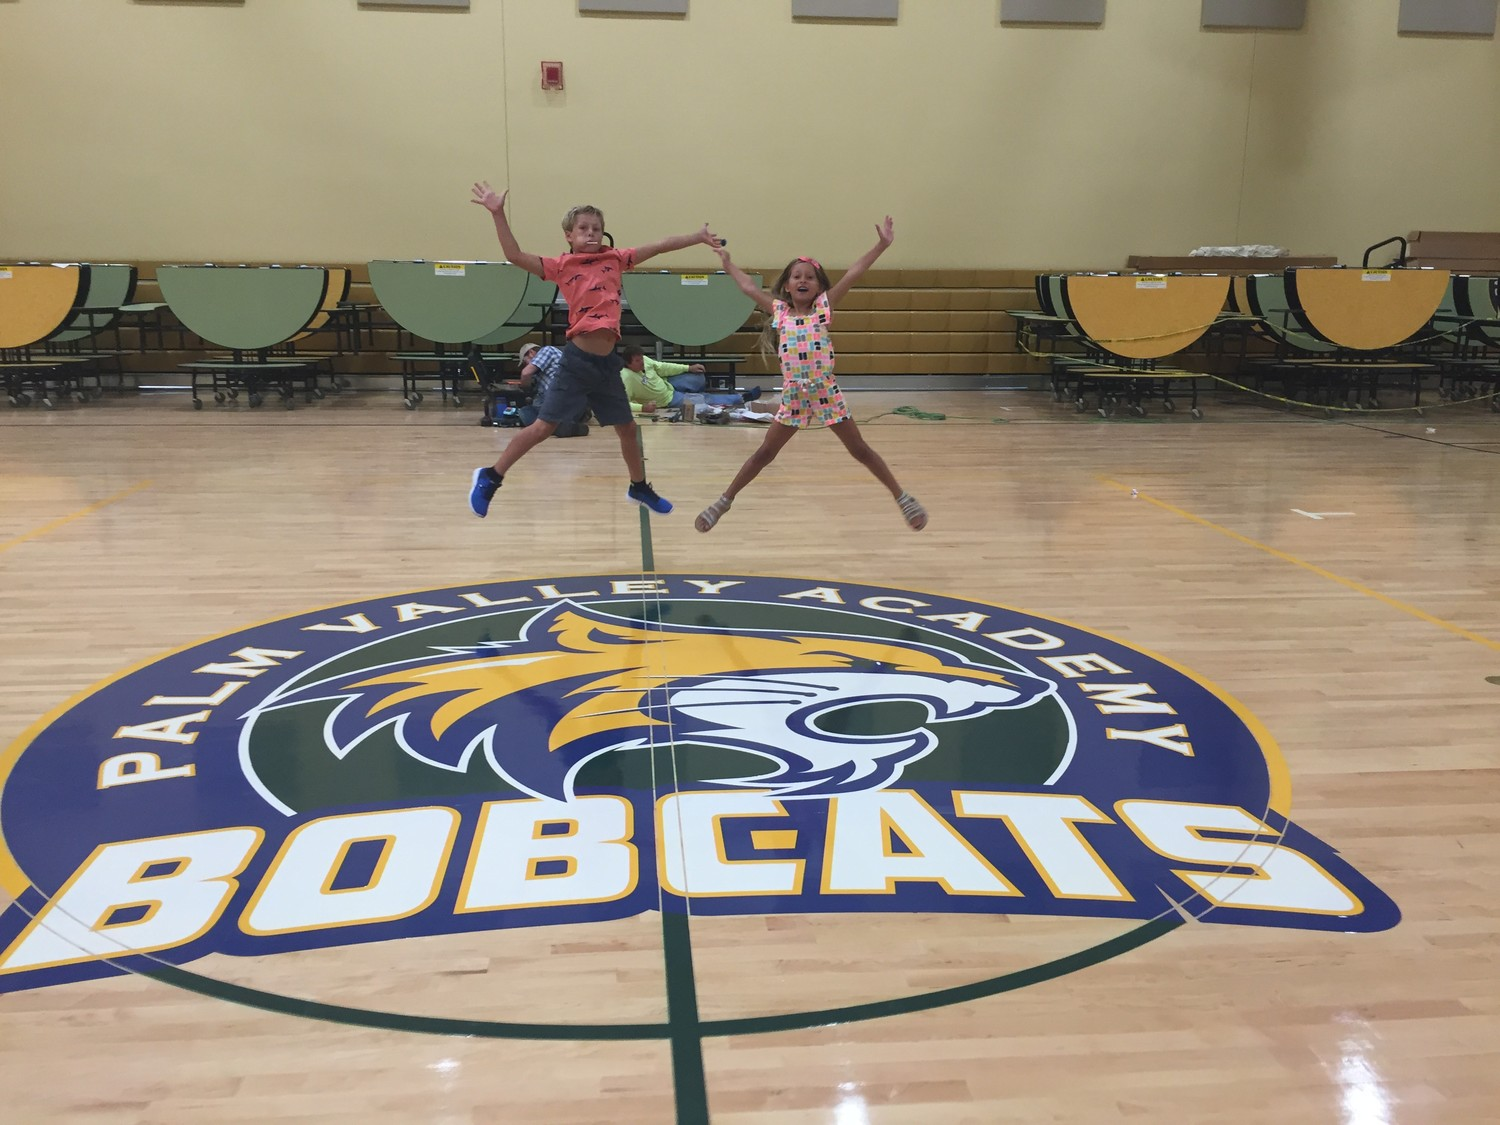 Third-grader Hudson Pennell and first-grader Piper Pennell celebrate their new school in Palm Valley Academy's gymnasium.